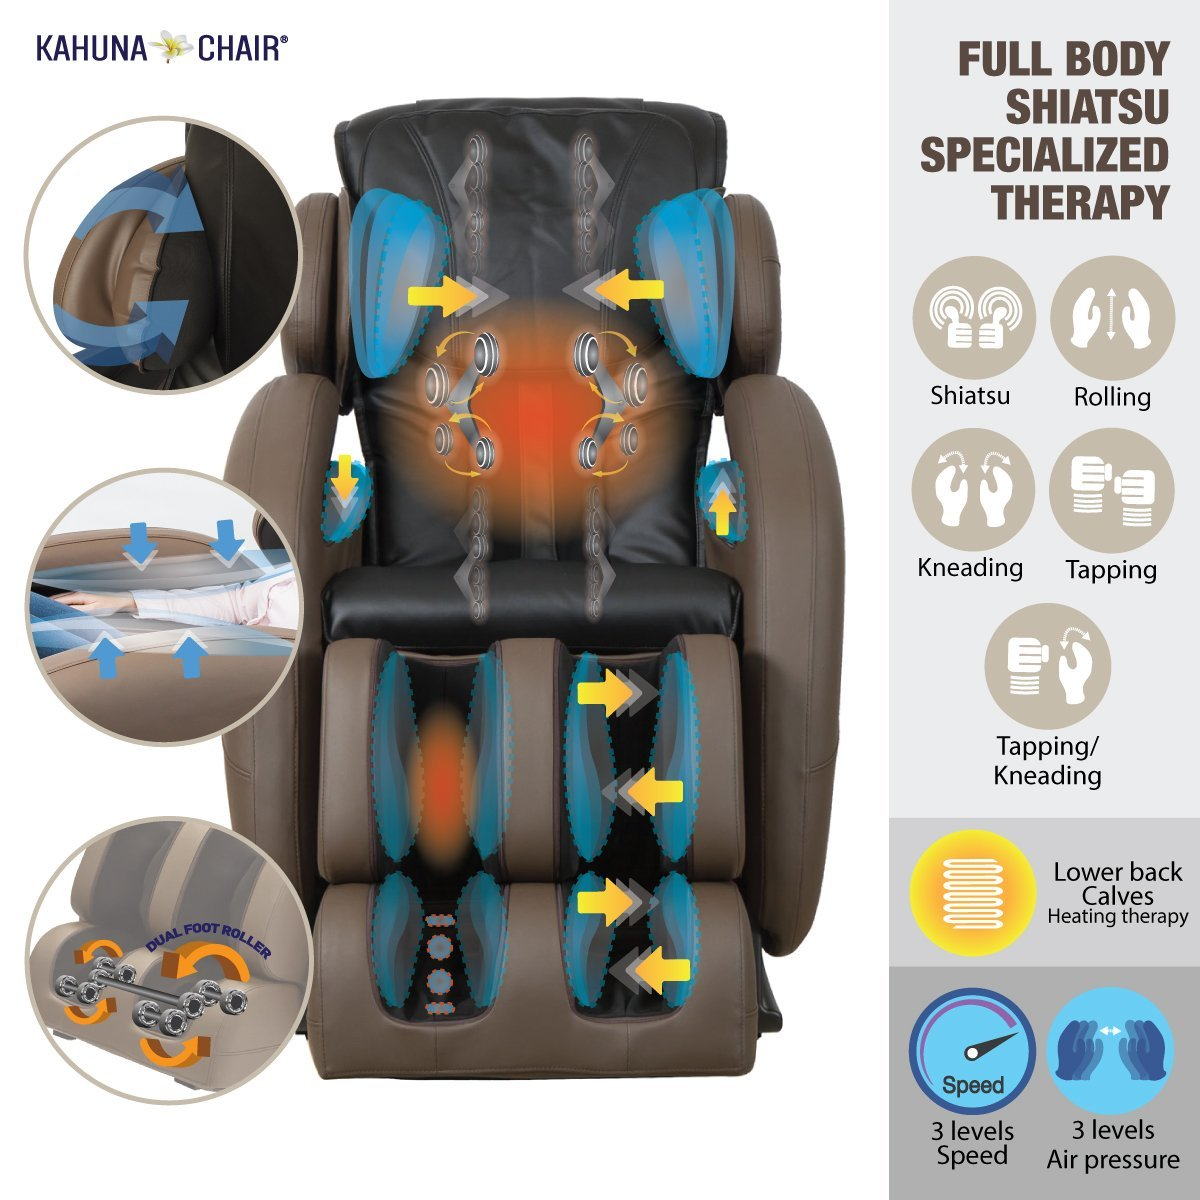 Kahuna LM6800 Full Body Massage - Kahuna Massage Chair Reviews